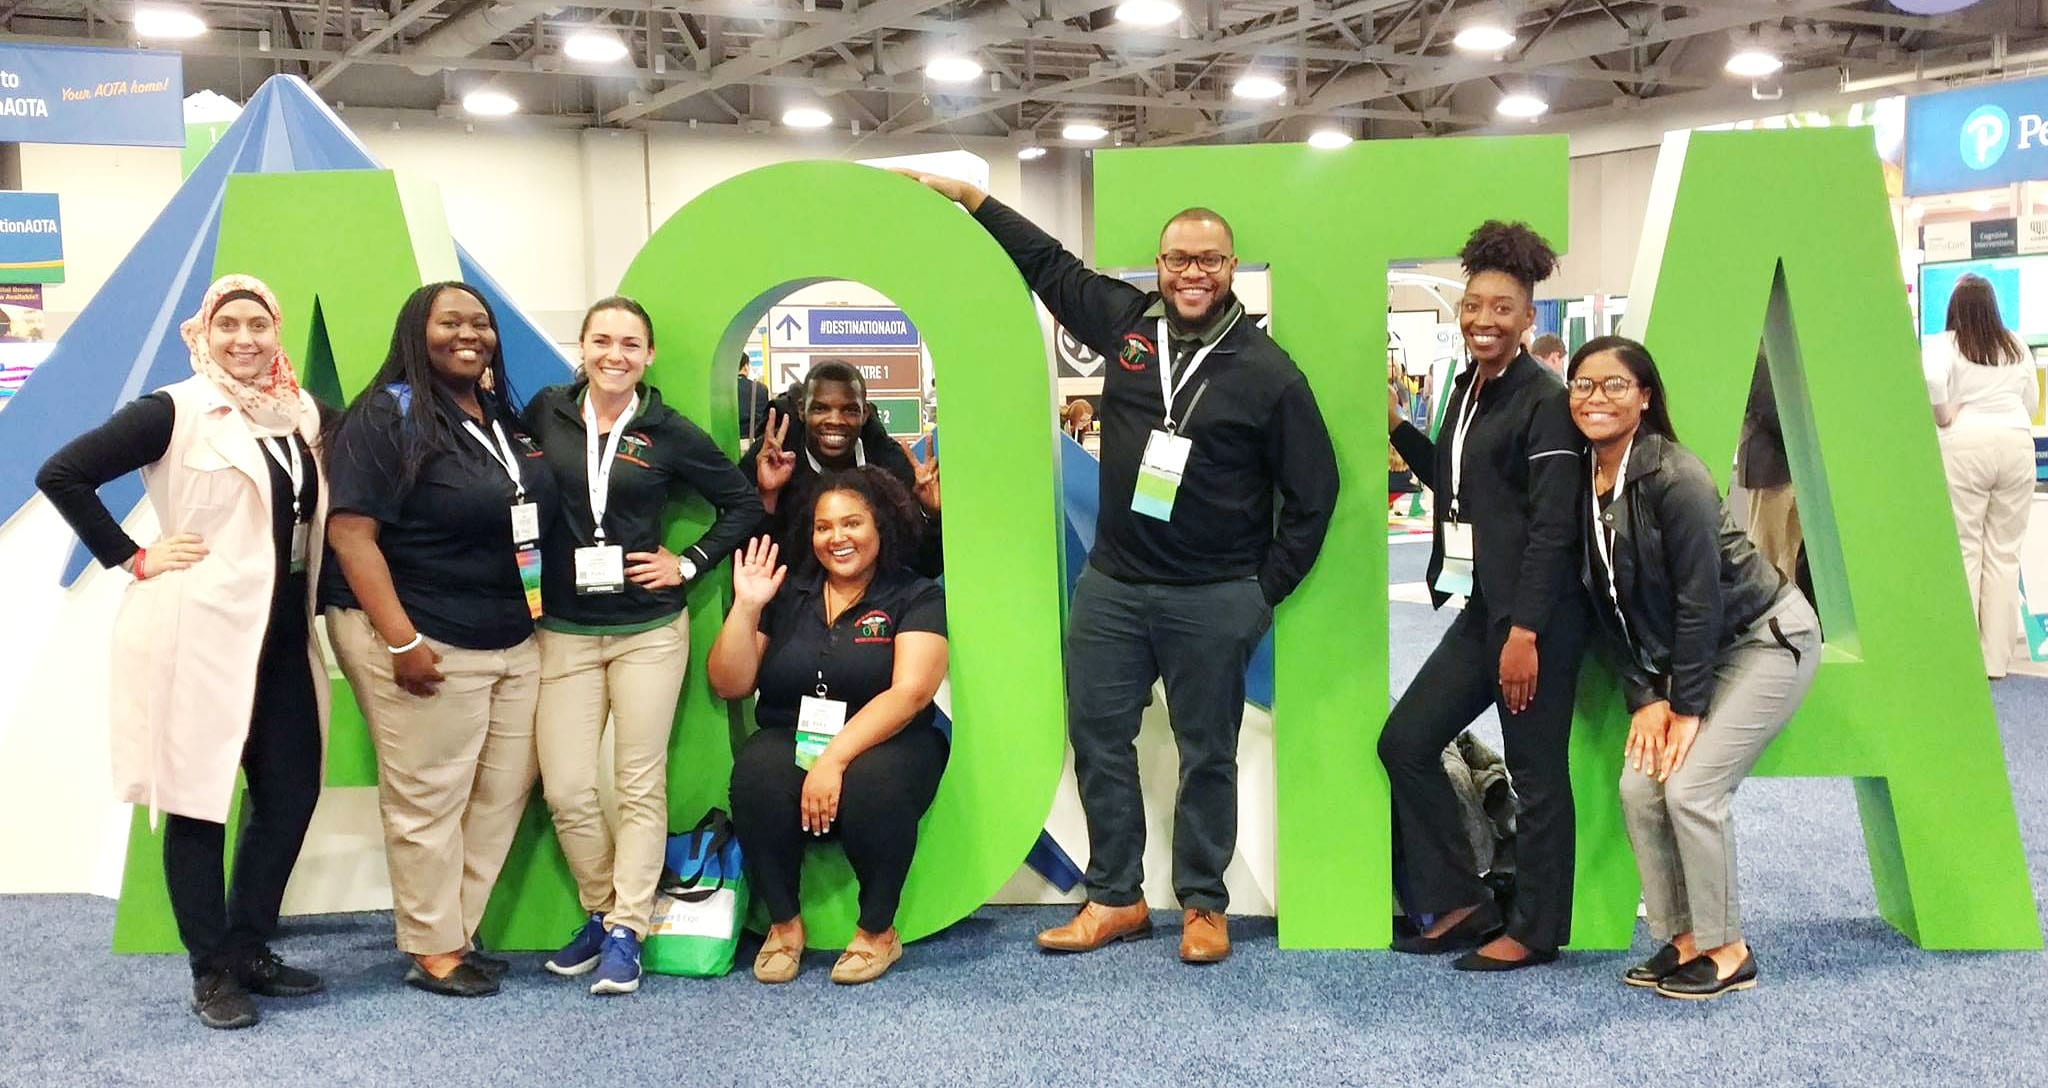 Association Profile: How AOTA is Building Strong Relationships with Young Professionals